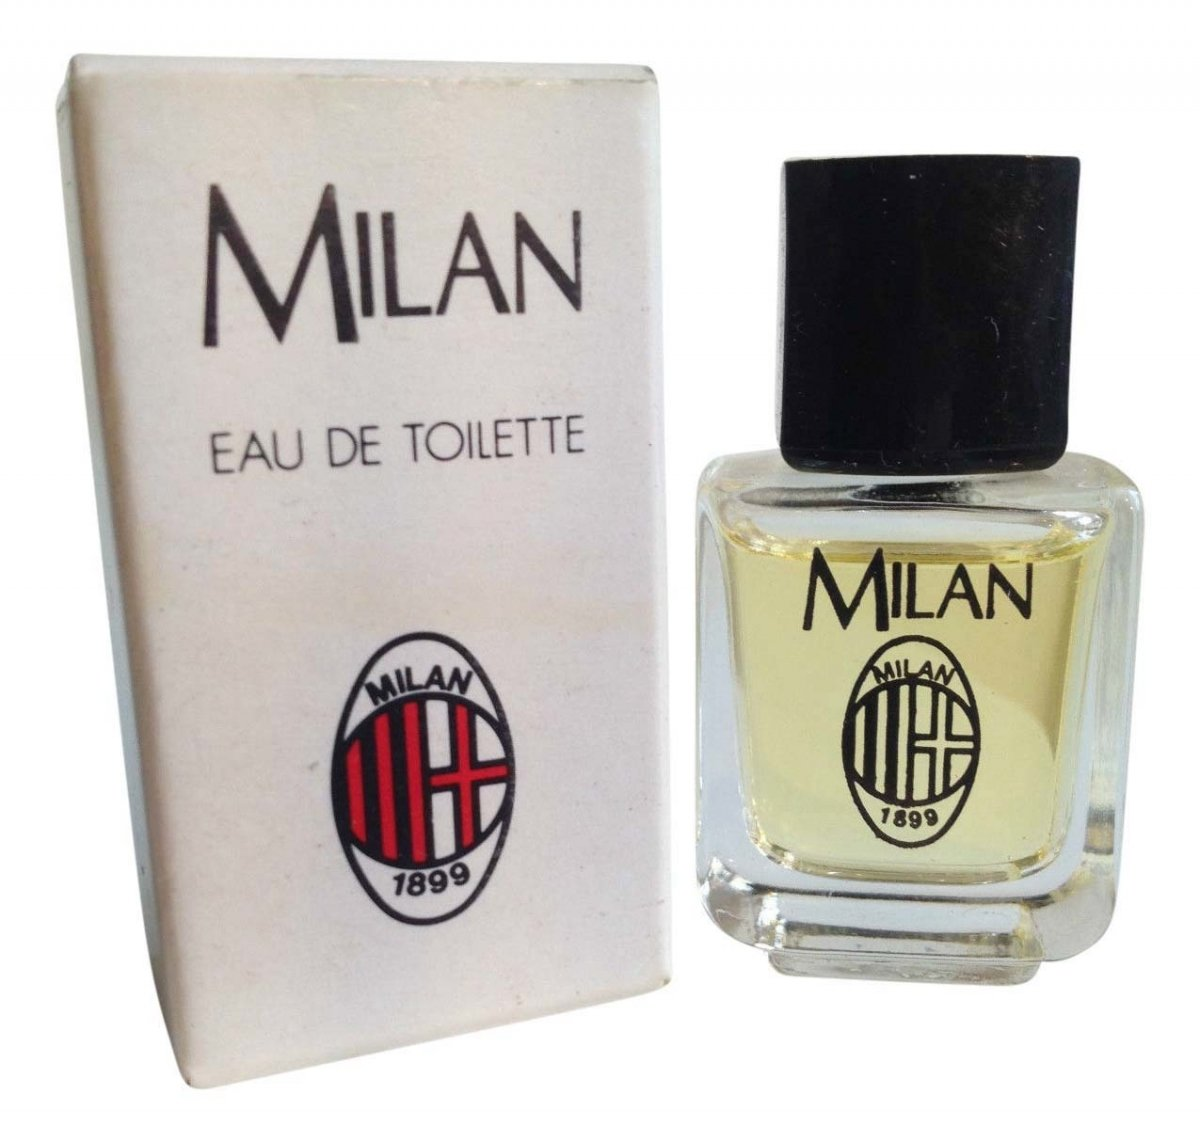 Photo De Toilette Satinine Milan Eau De Toilette Reviews And Rating